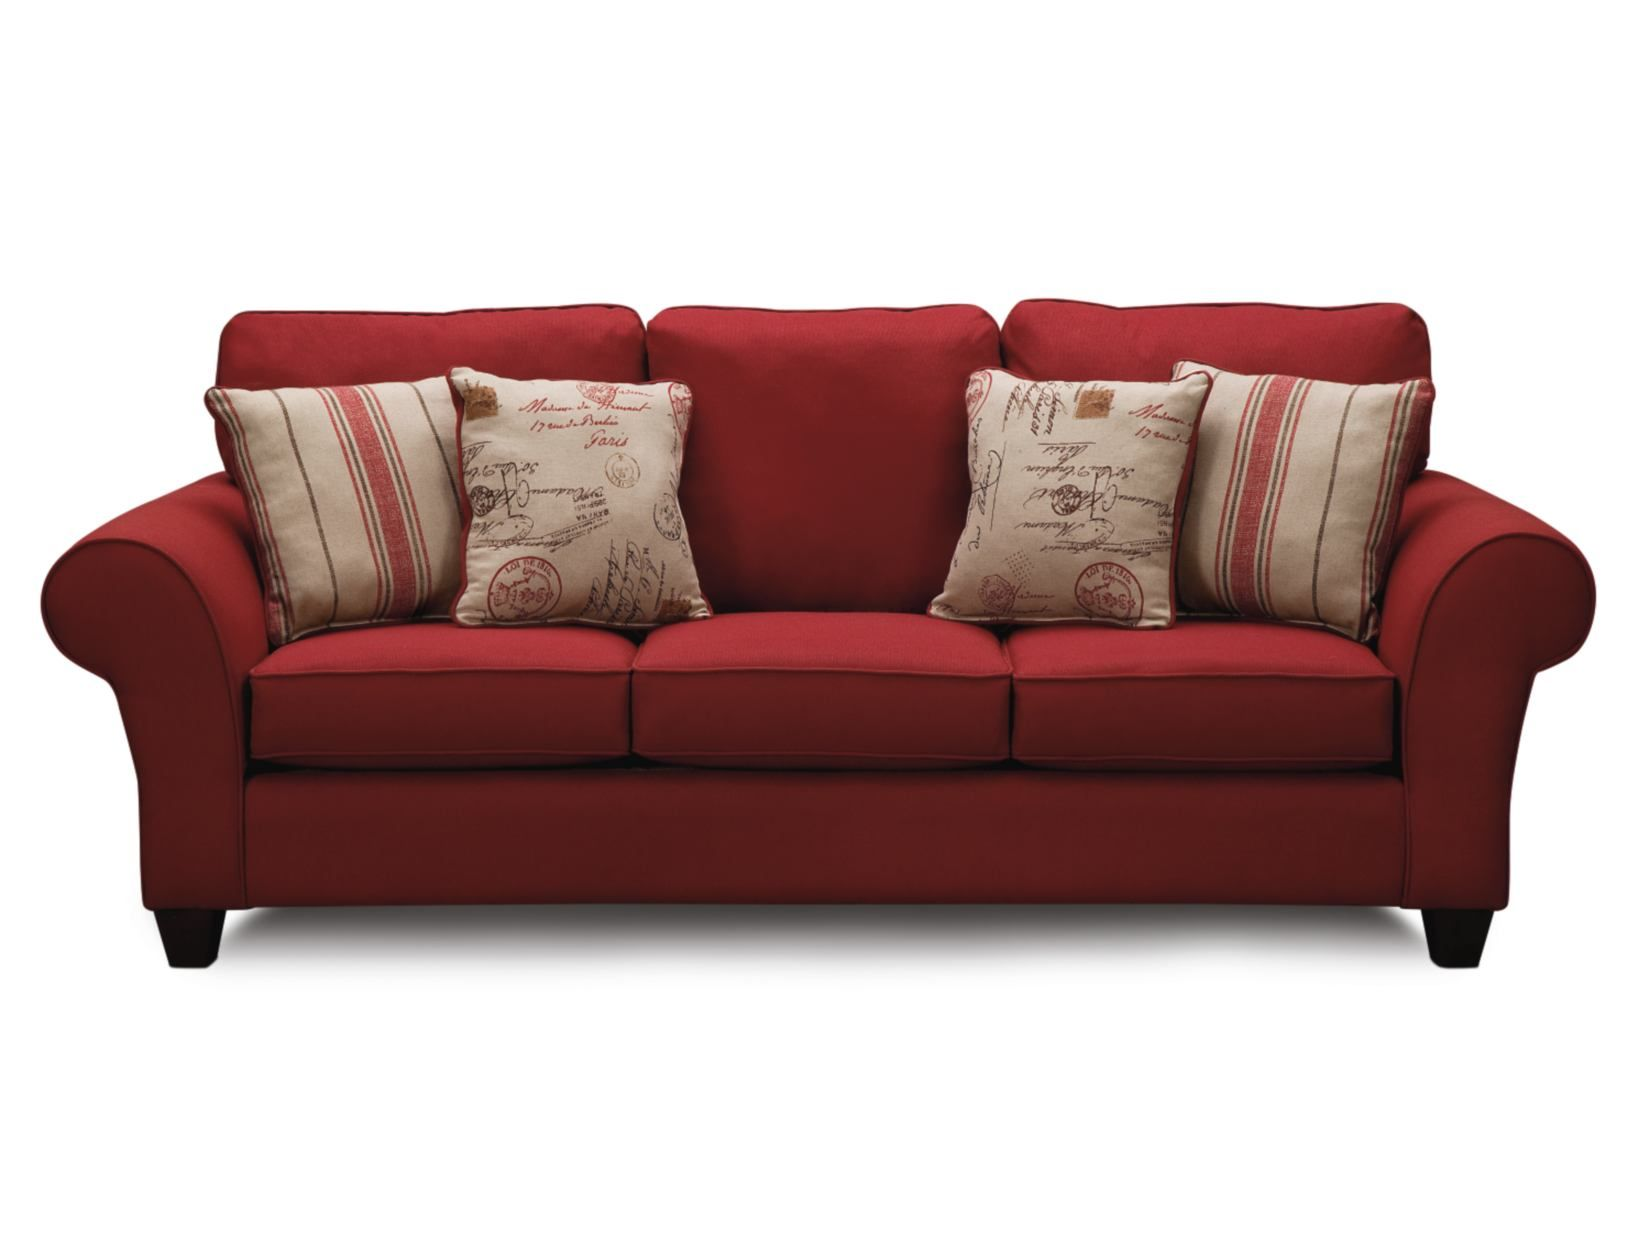 Palmer Red Sofa Value City Furniture Vegas house